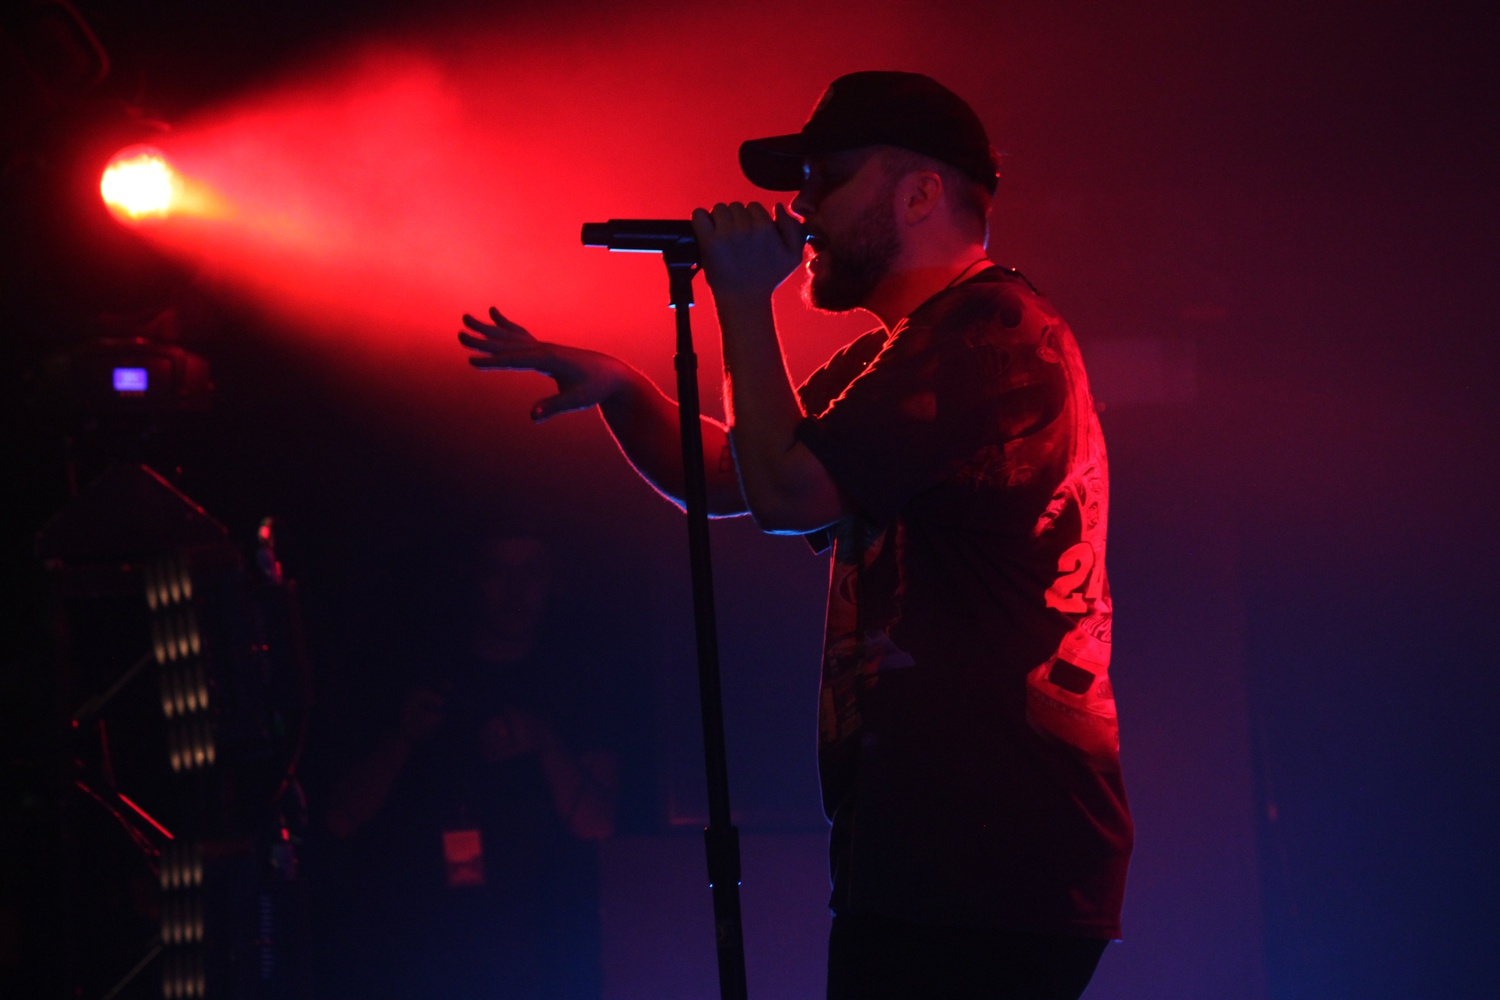 Quinnxcii performs at the House of Blues on Thursday night.